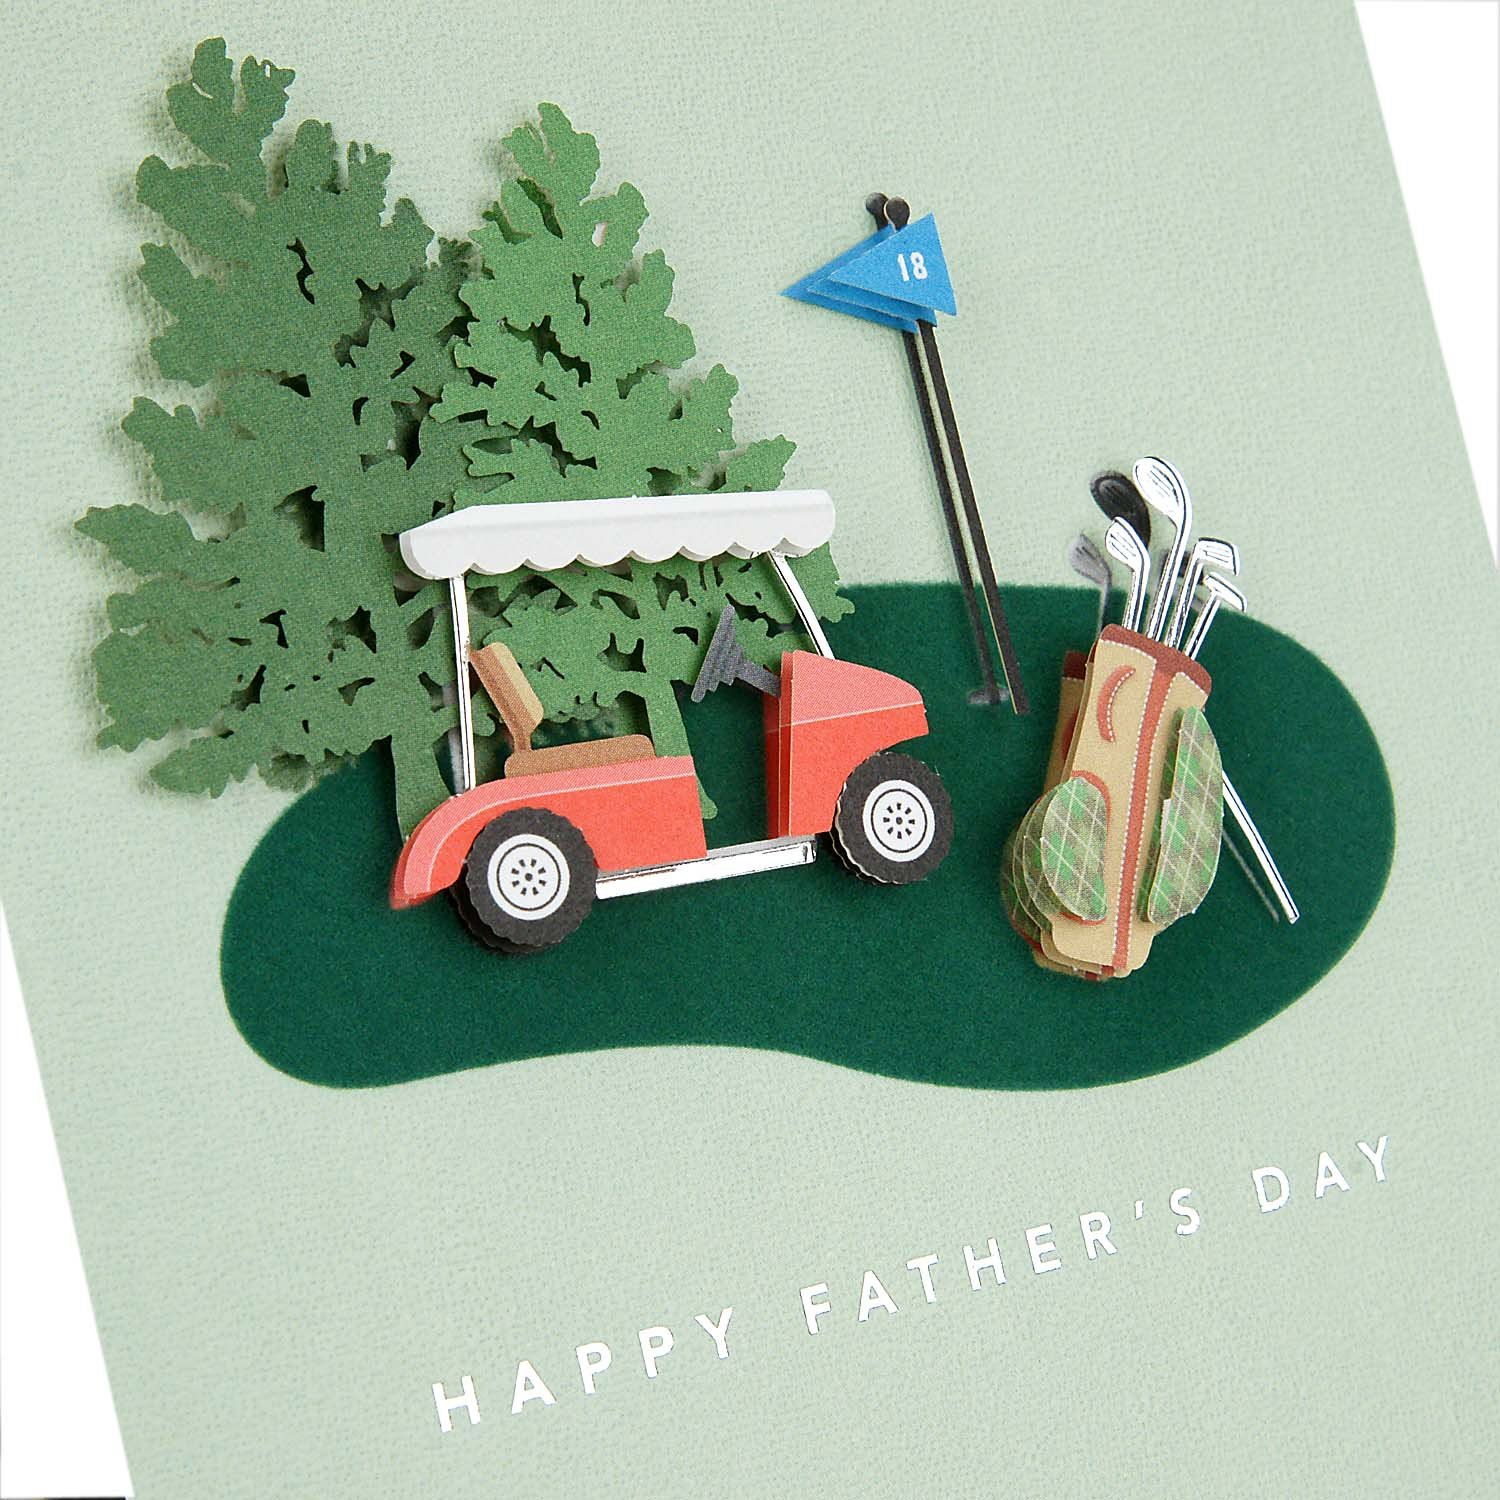 Hallmark Signature Fathers Day Card for Dad Fishing Boat